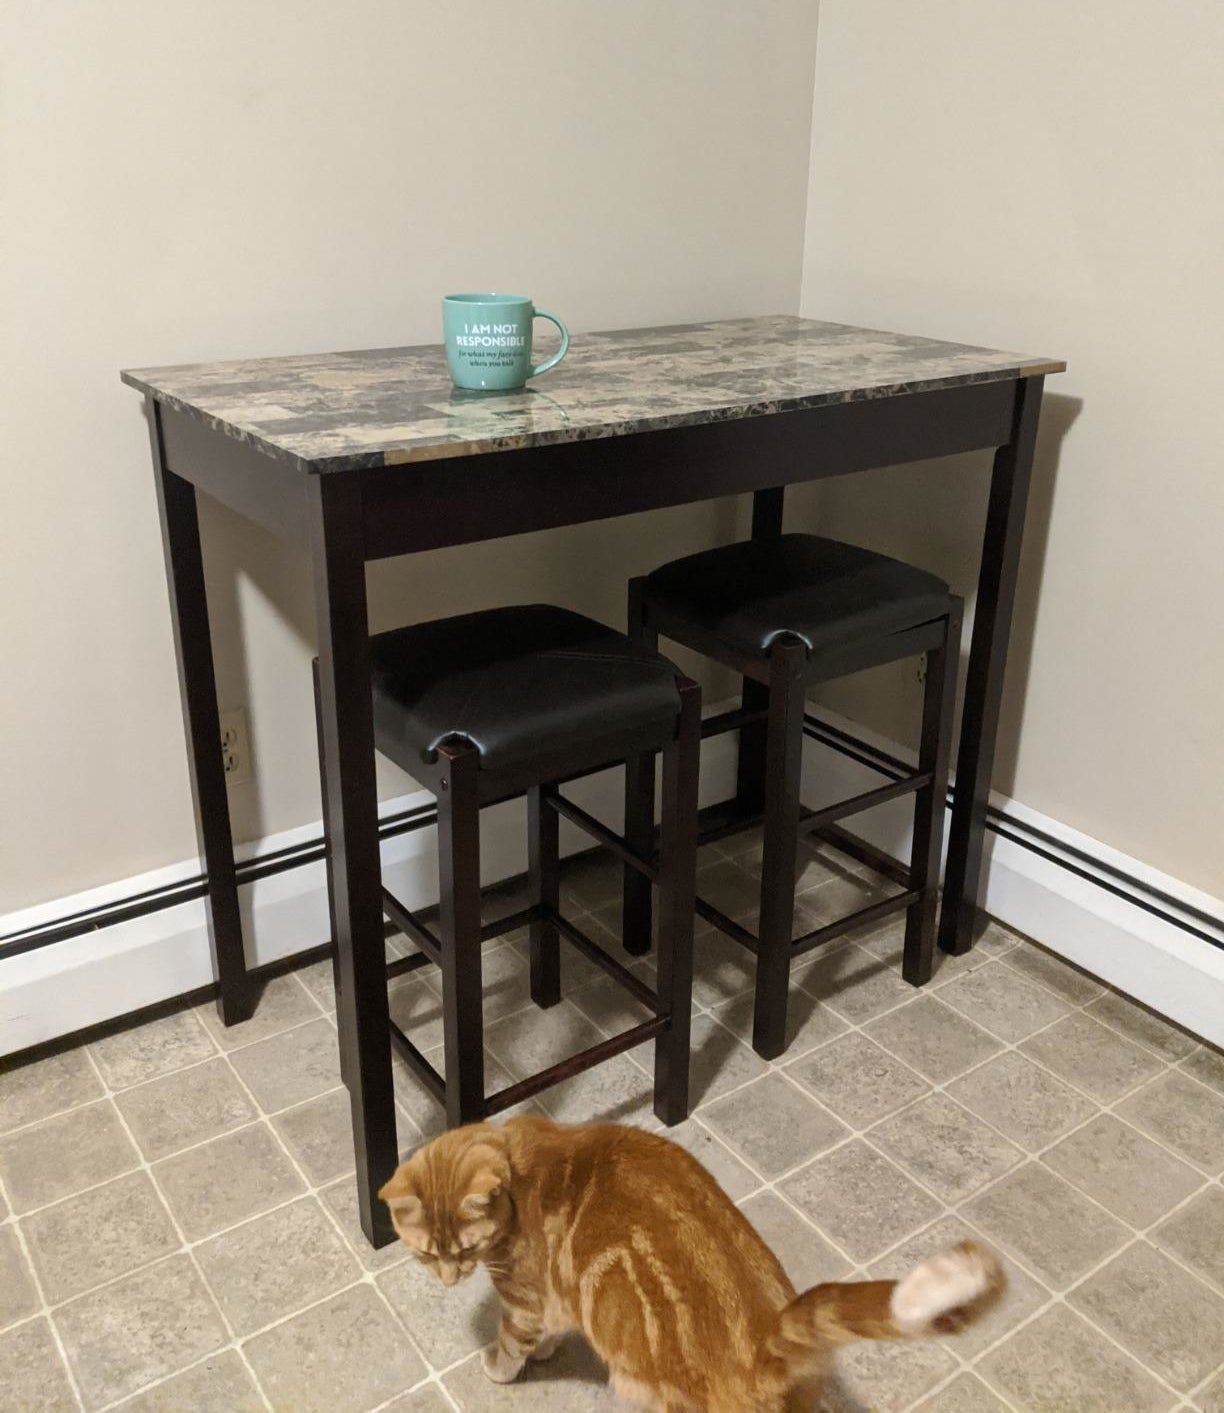 Reviewer pic of the tall table in brown with a marble-like top and two stools under it, also in brown